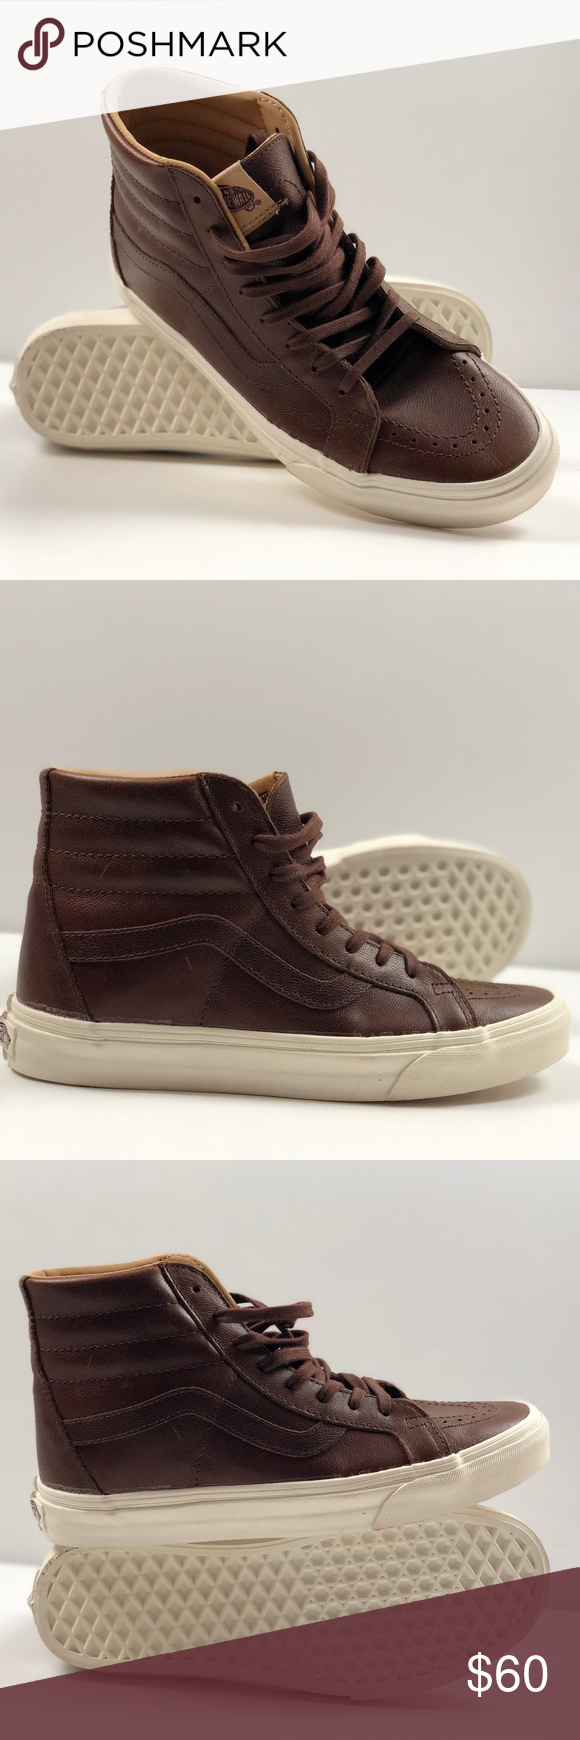 51ae62e1c88 Vans SK8- Hi Reissue Lux Leather Shaved Chocolate Porcini. Condition  New  with box. Size  Women s 8.5